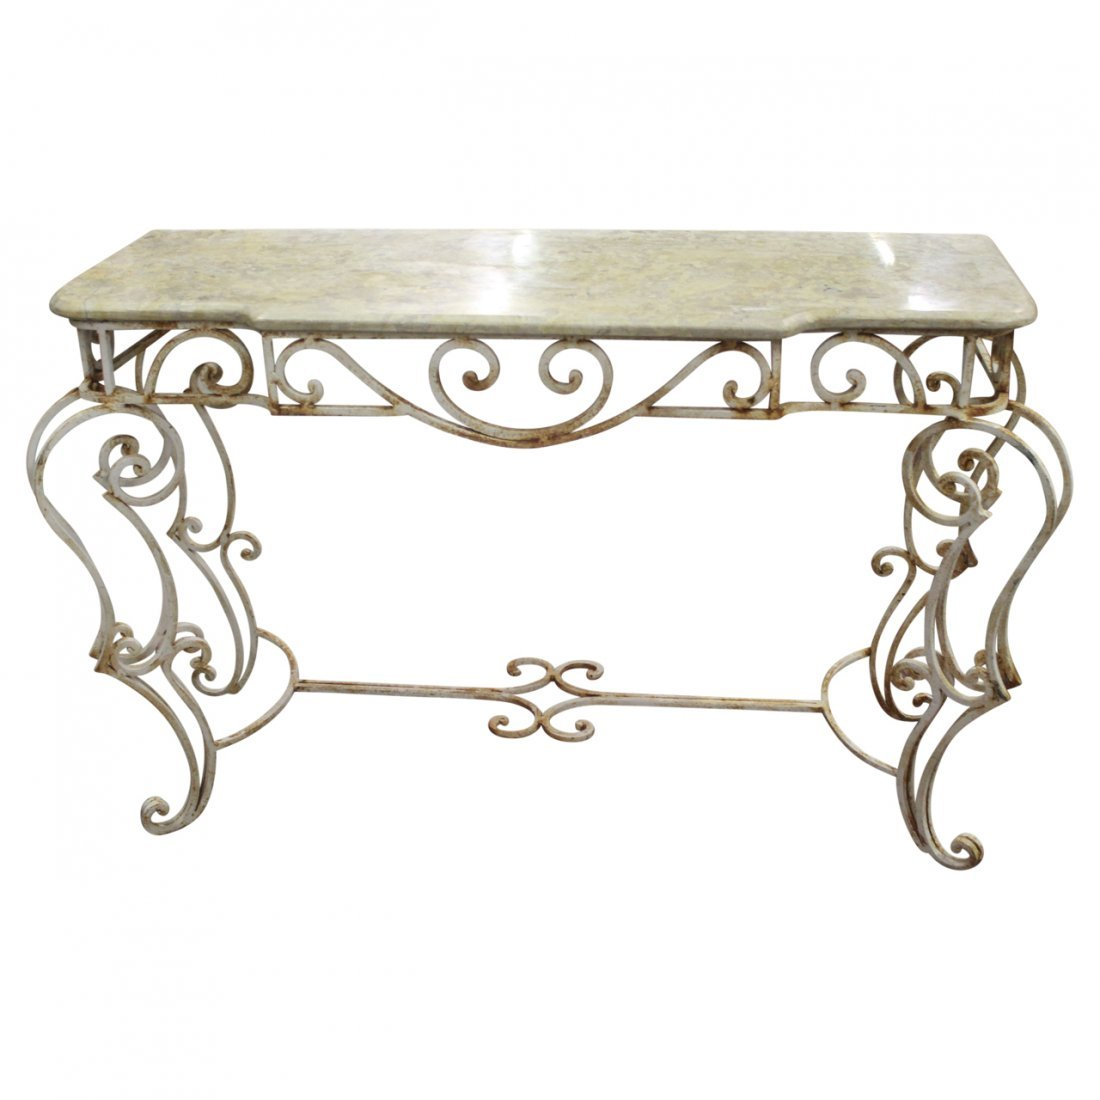 Serpentine Marble and Wrought Iron Credenza